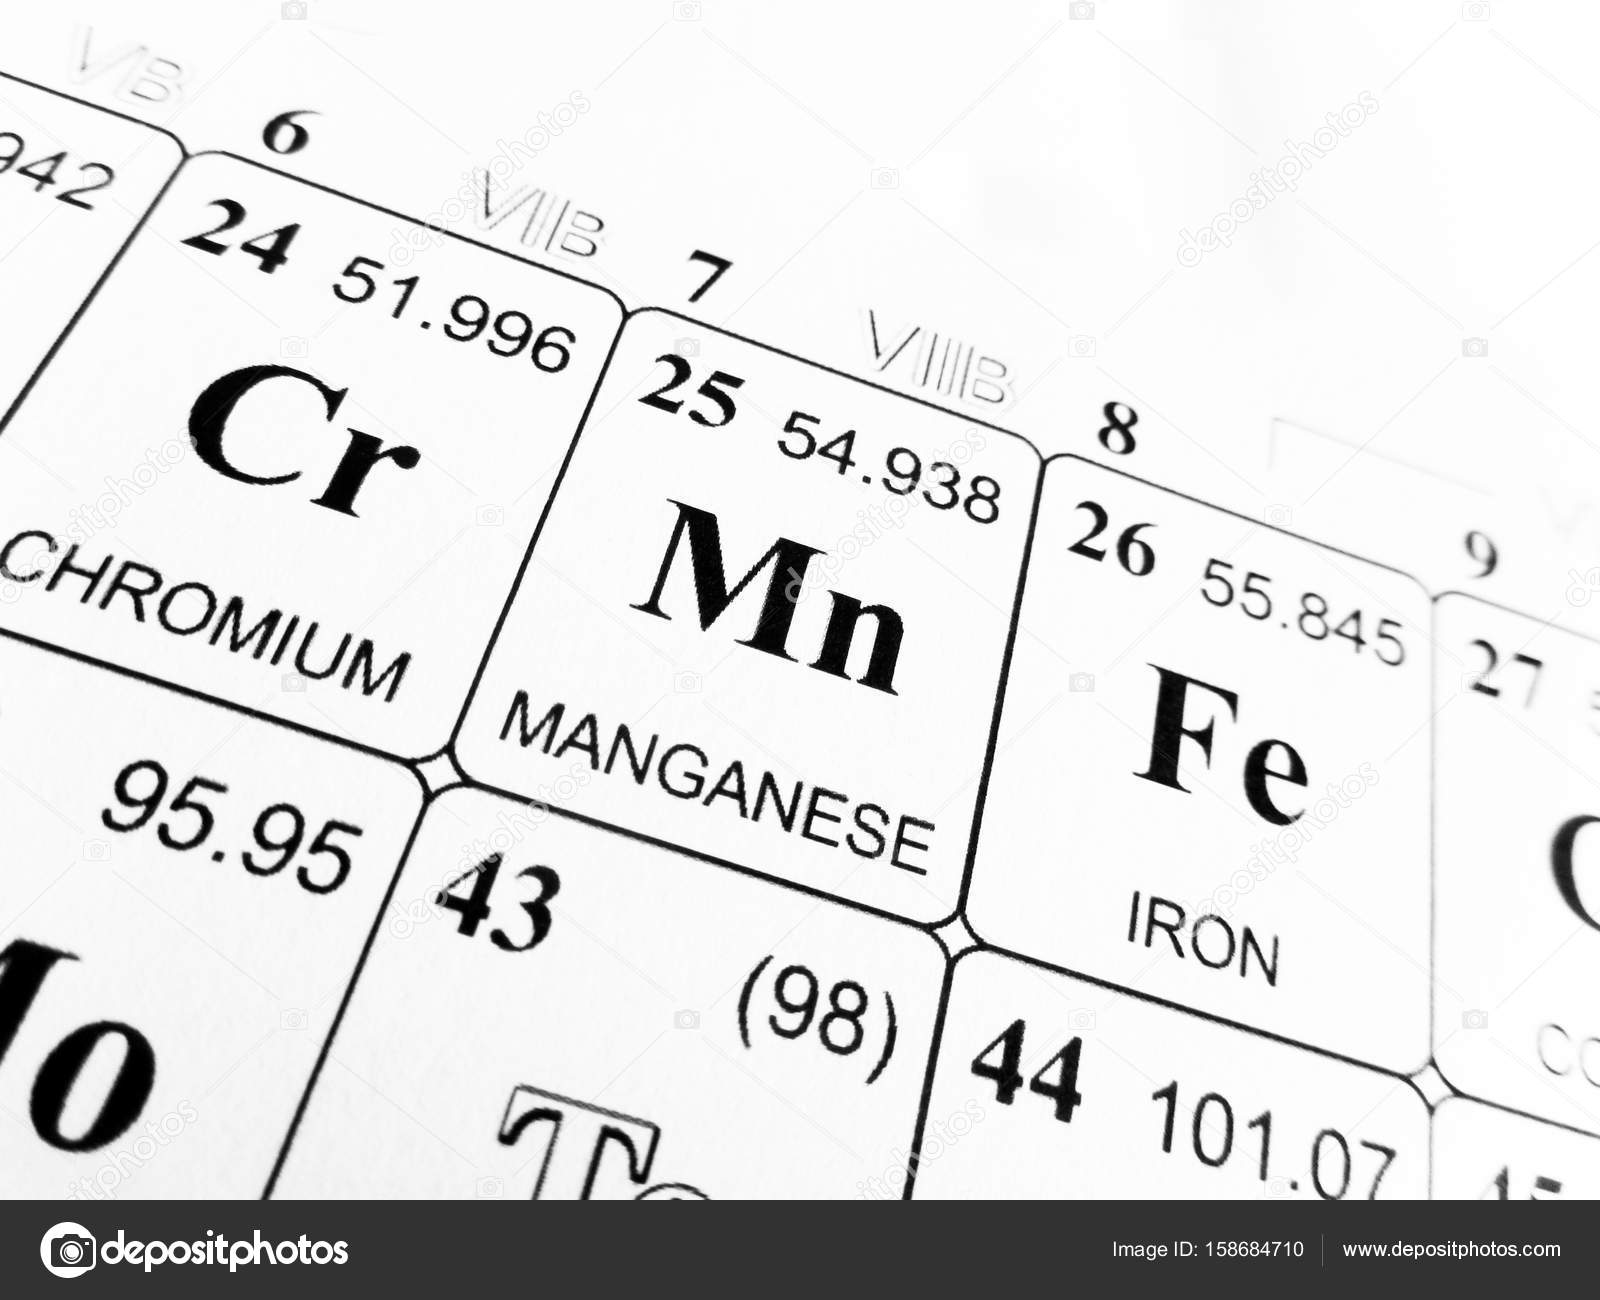 Manganese on the periodic table of the elements stock photo manganese on the periodic table of the elements stock photo 158684710 gamestrikefo Images